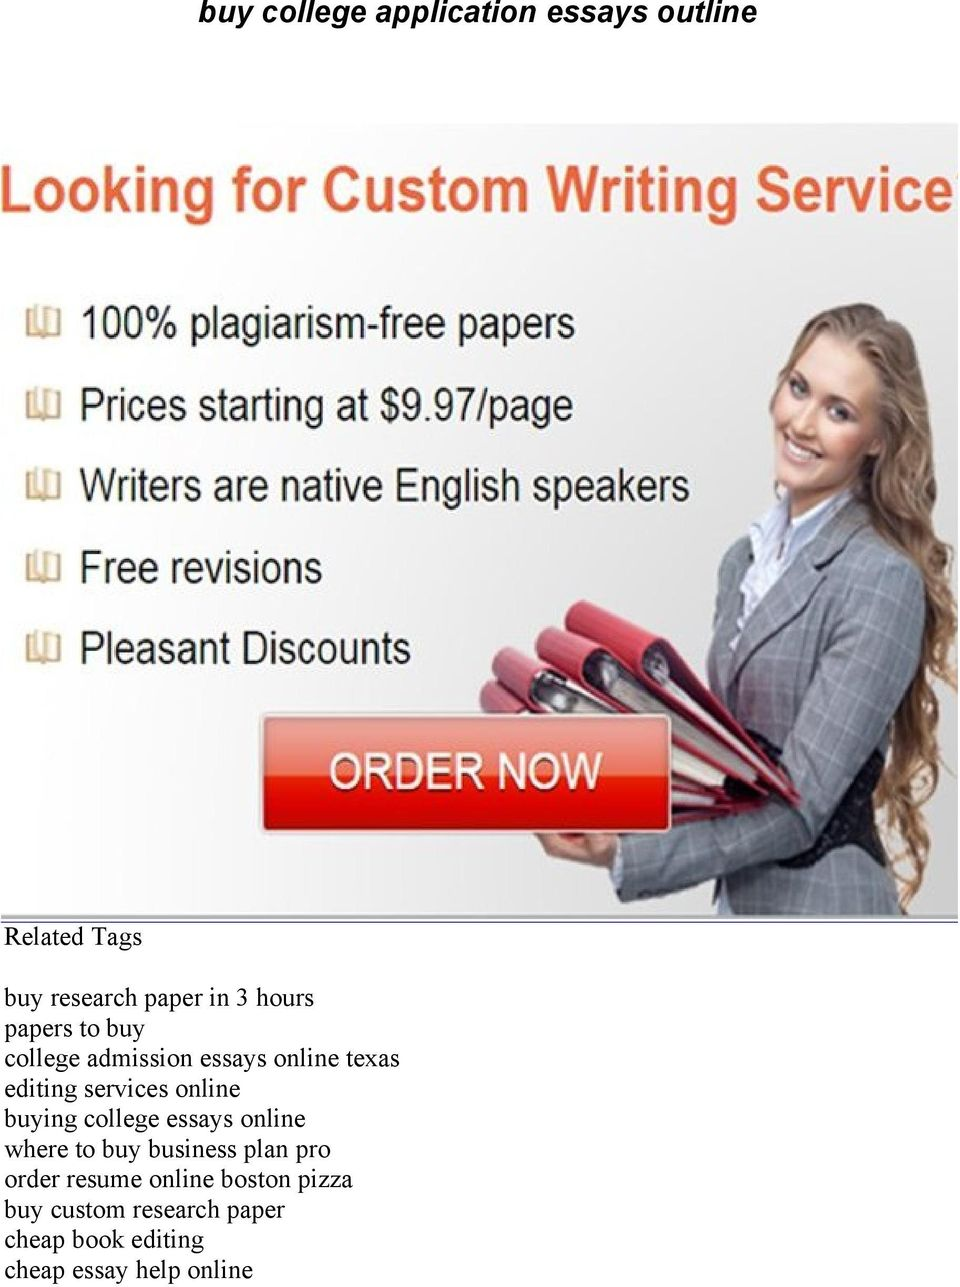 online buying college essays online where to buy business plan pro order resume